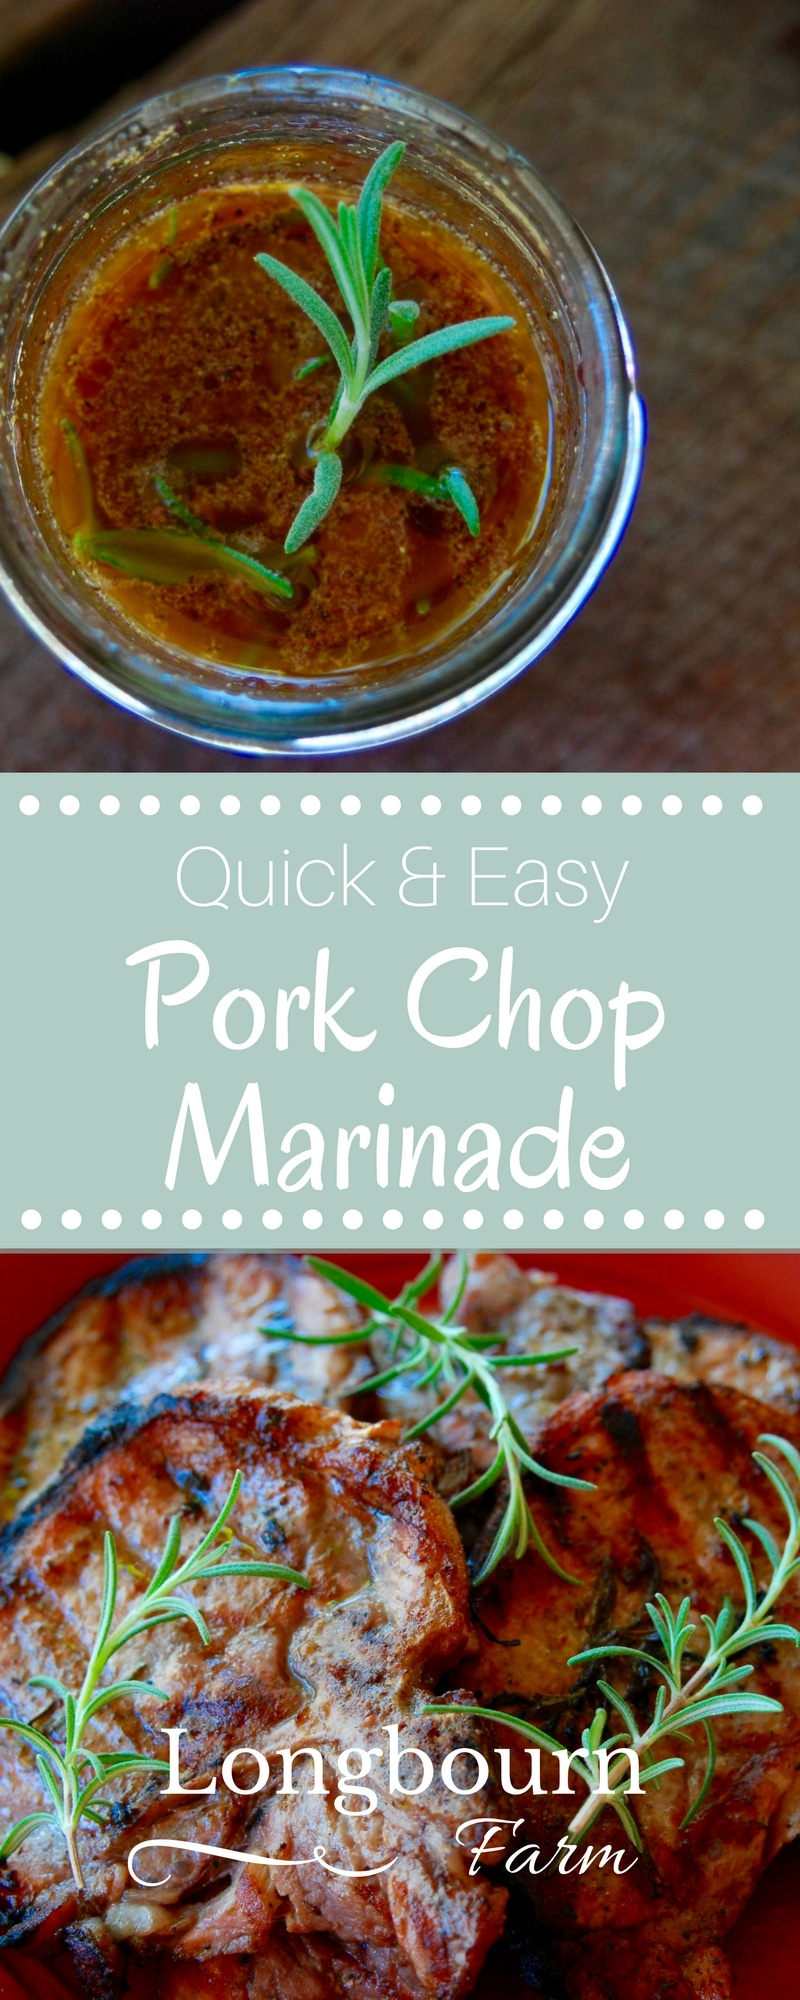 This pork chop marinade for grilling comes together in minutes and is delicious every time. Use it on the grill or on the stovetop, either way, is great!